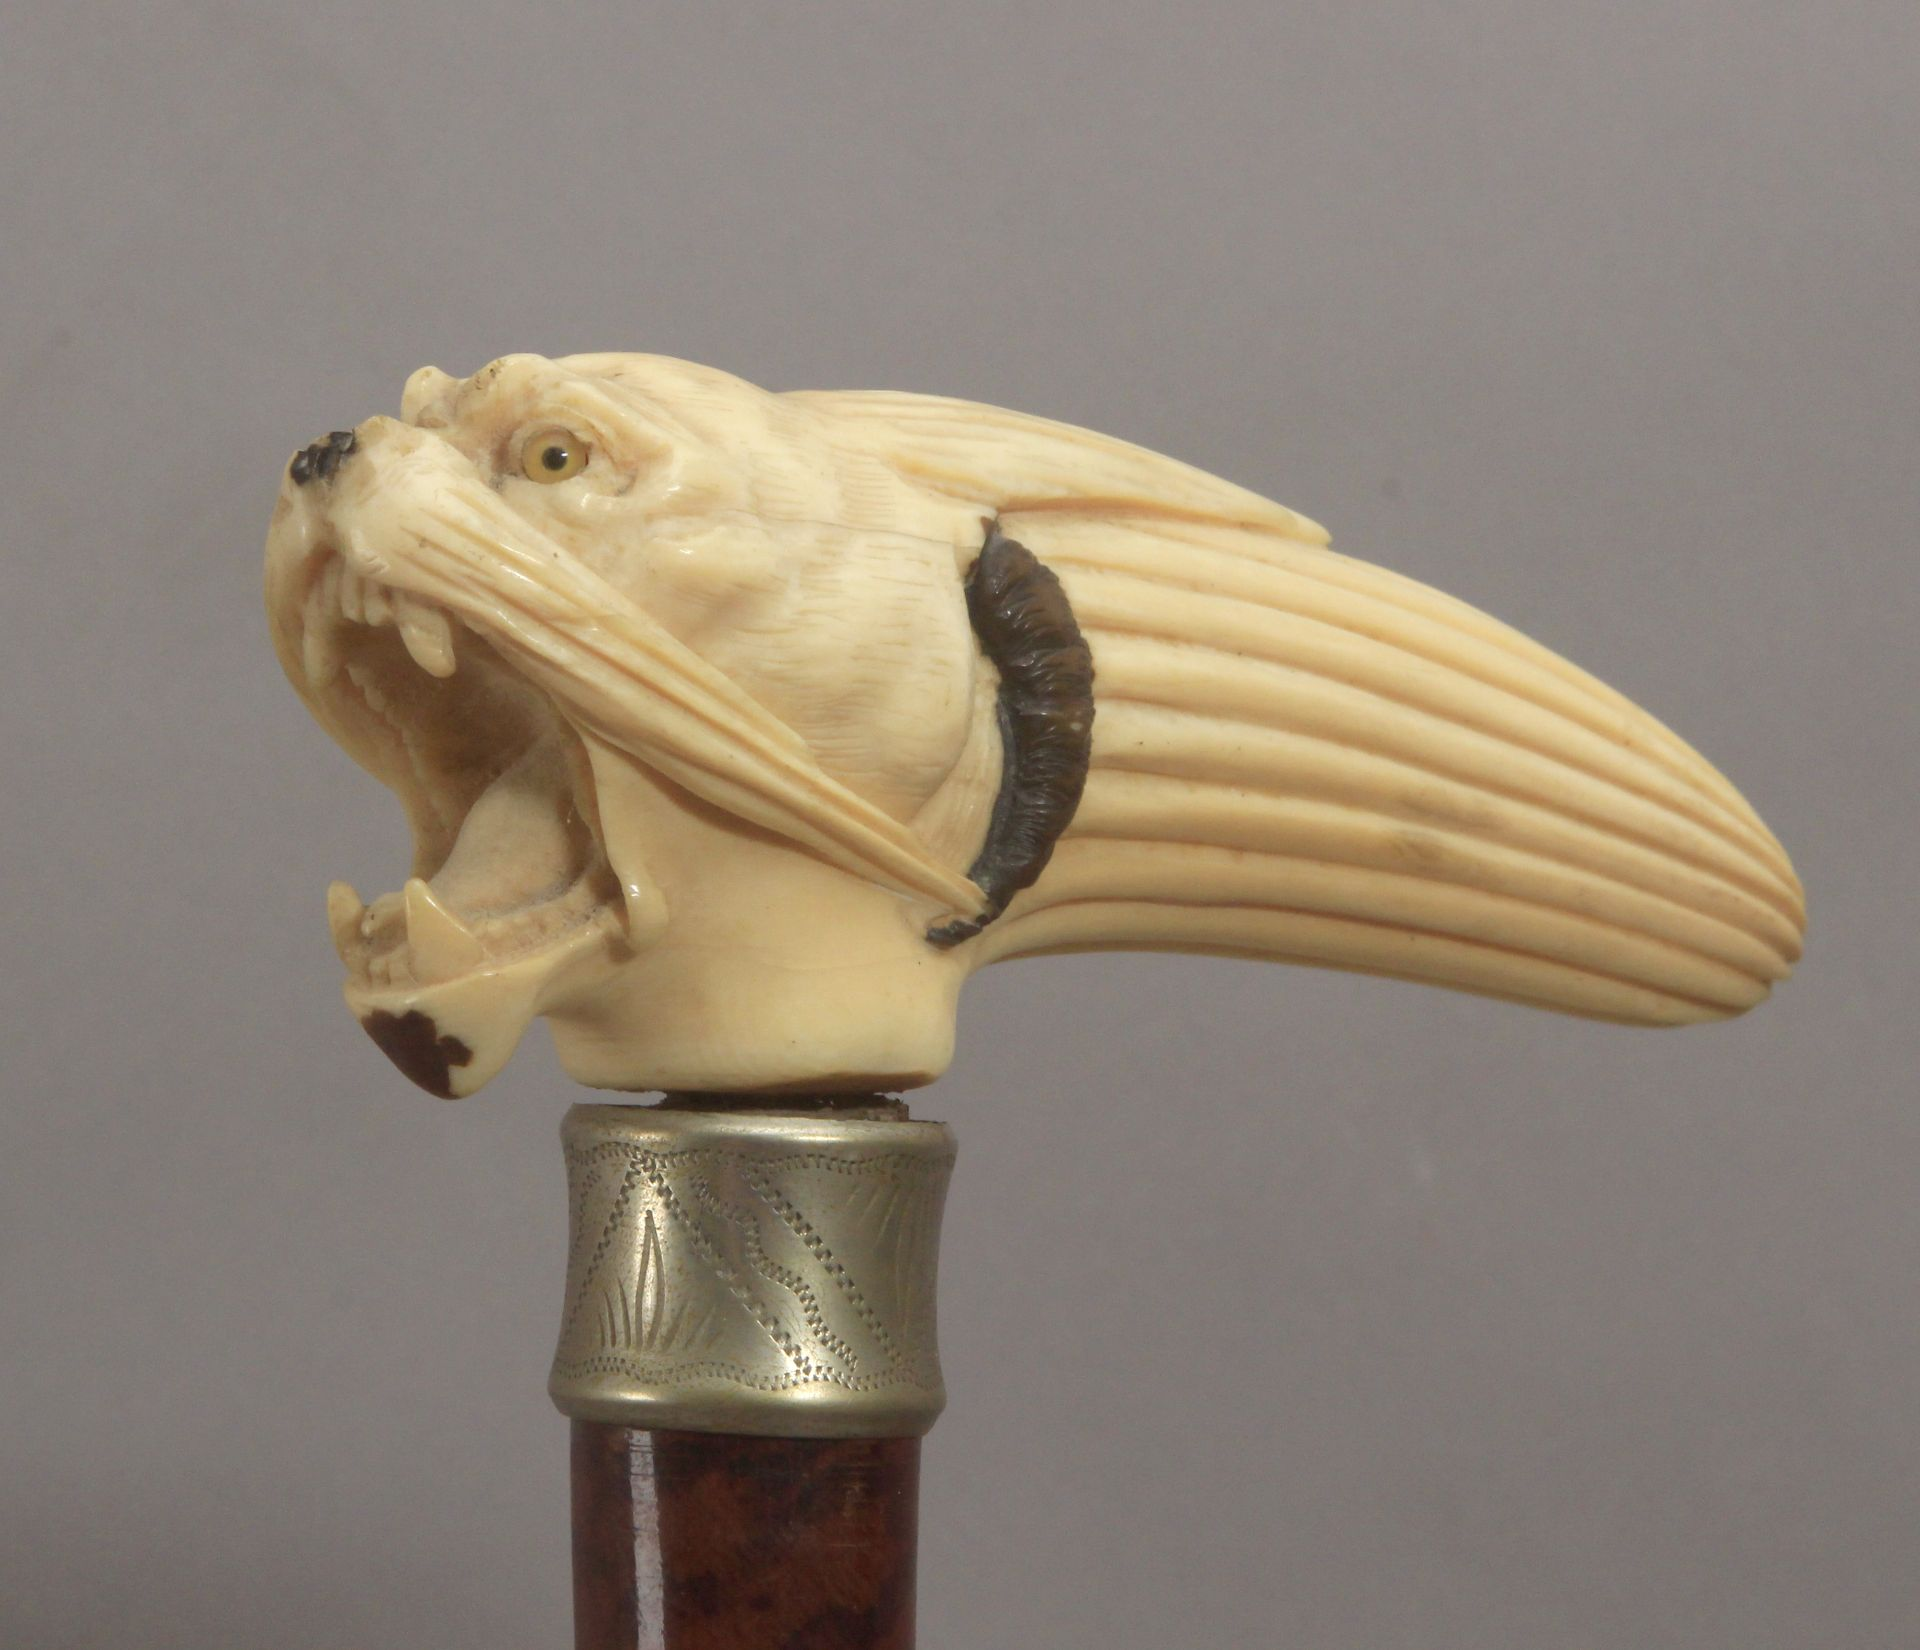 A 19th century ivory handled walking stick